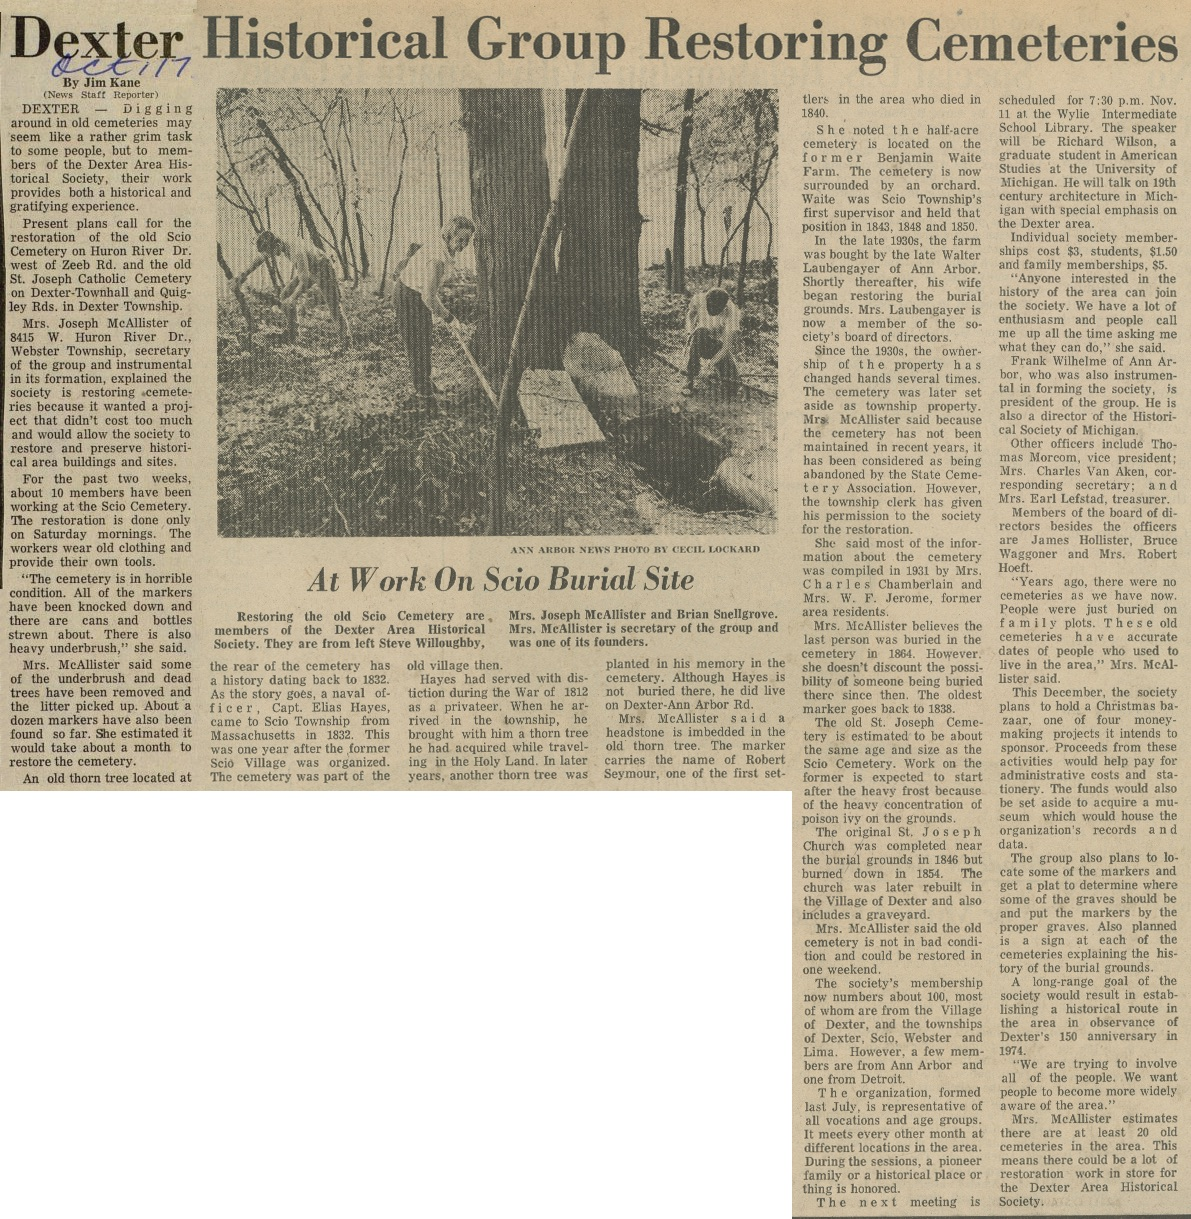 Dexter Historical Group Restoring Cemeteries image